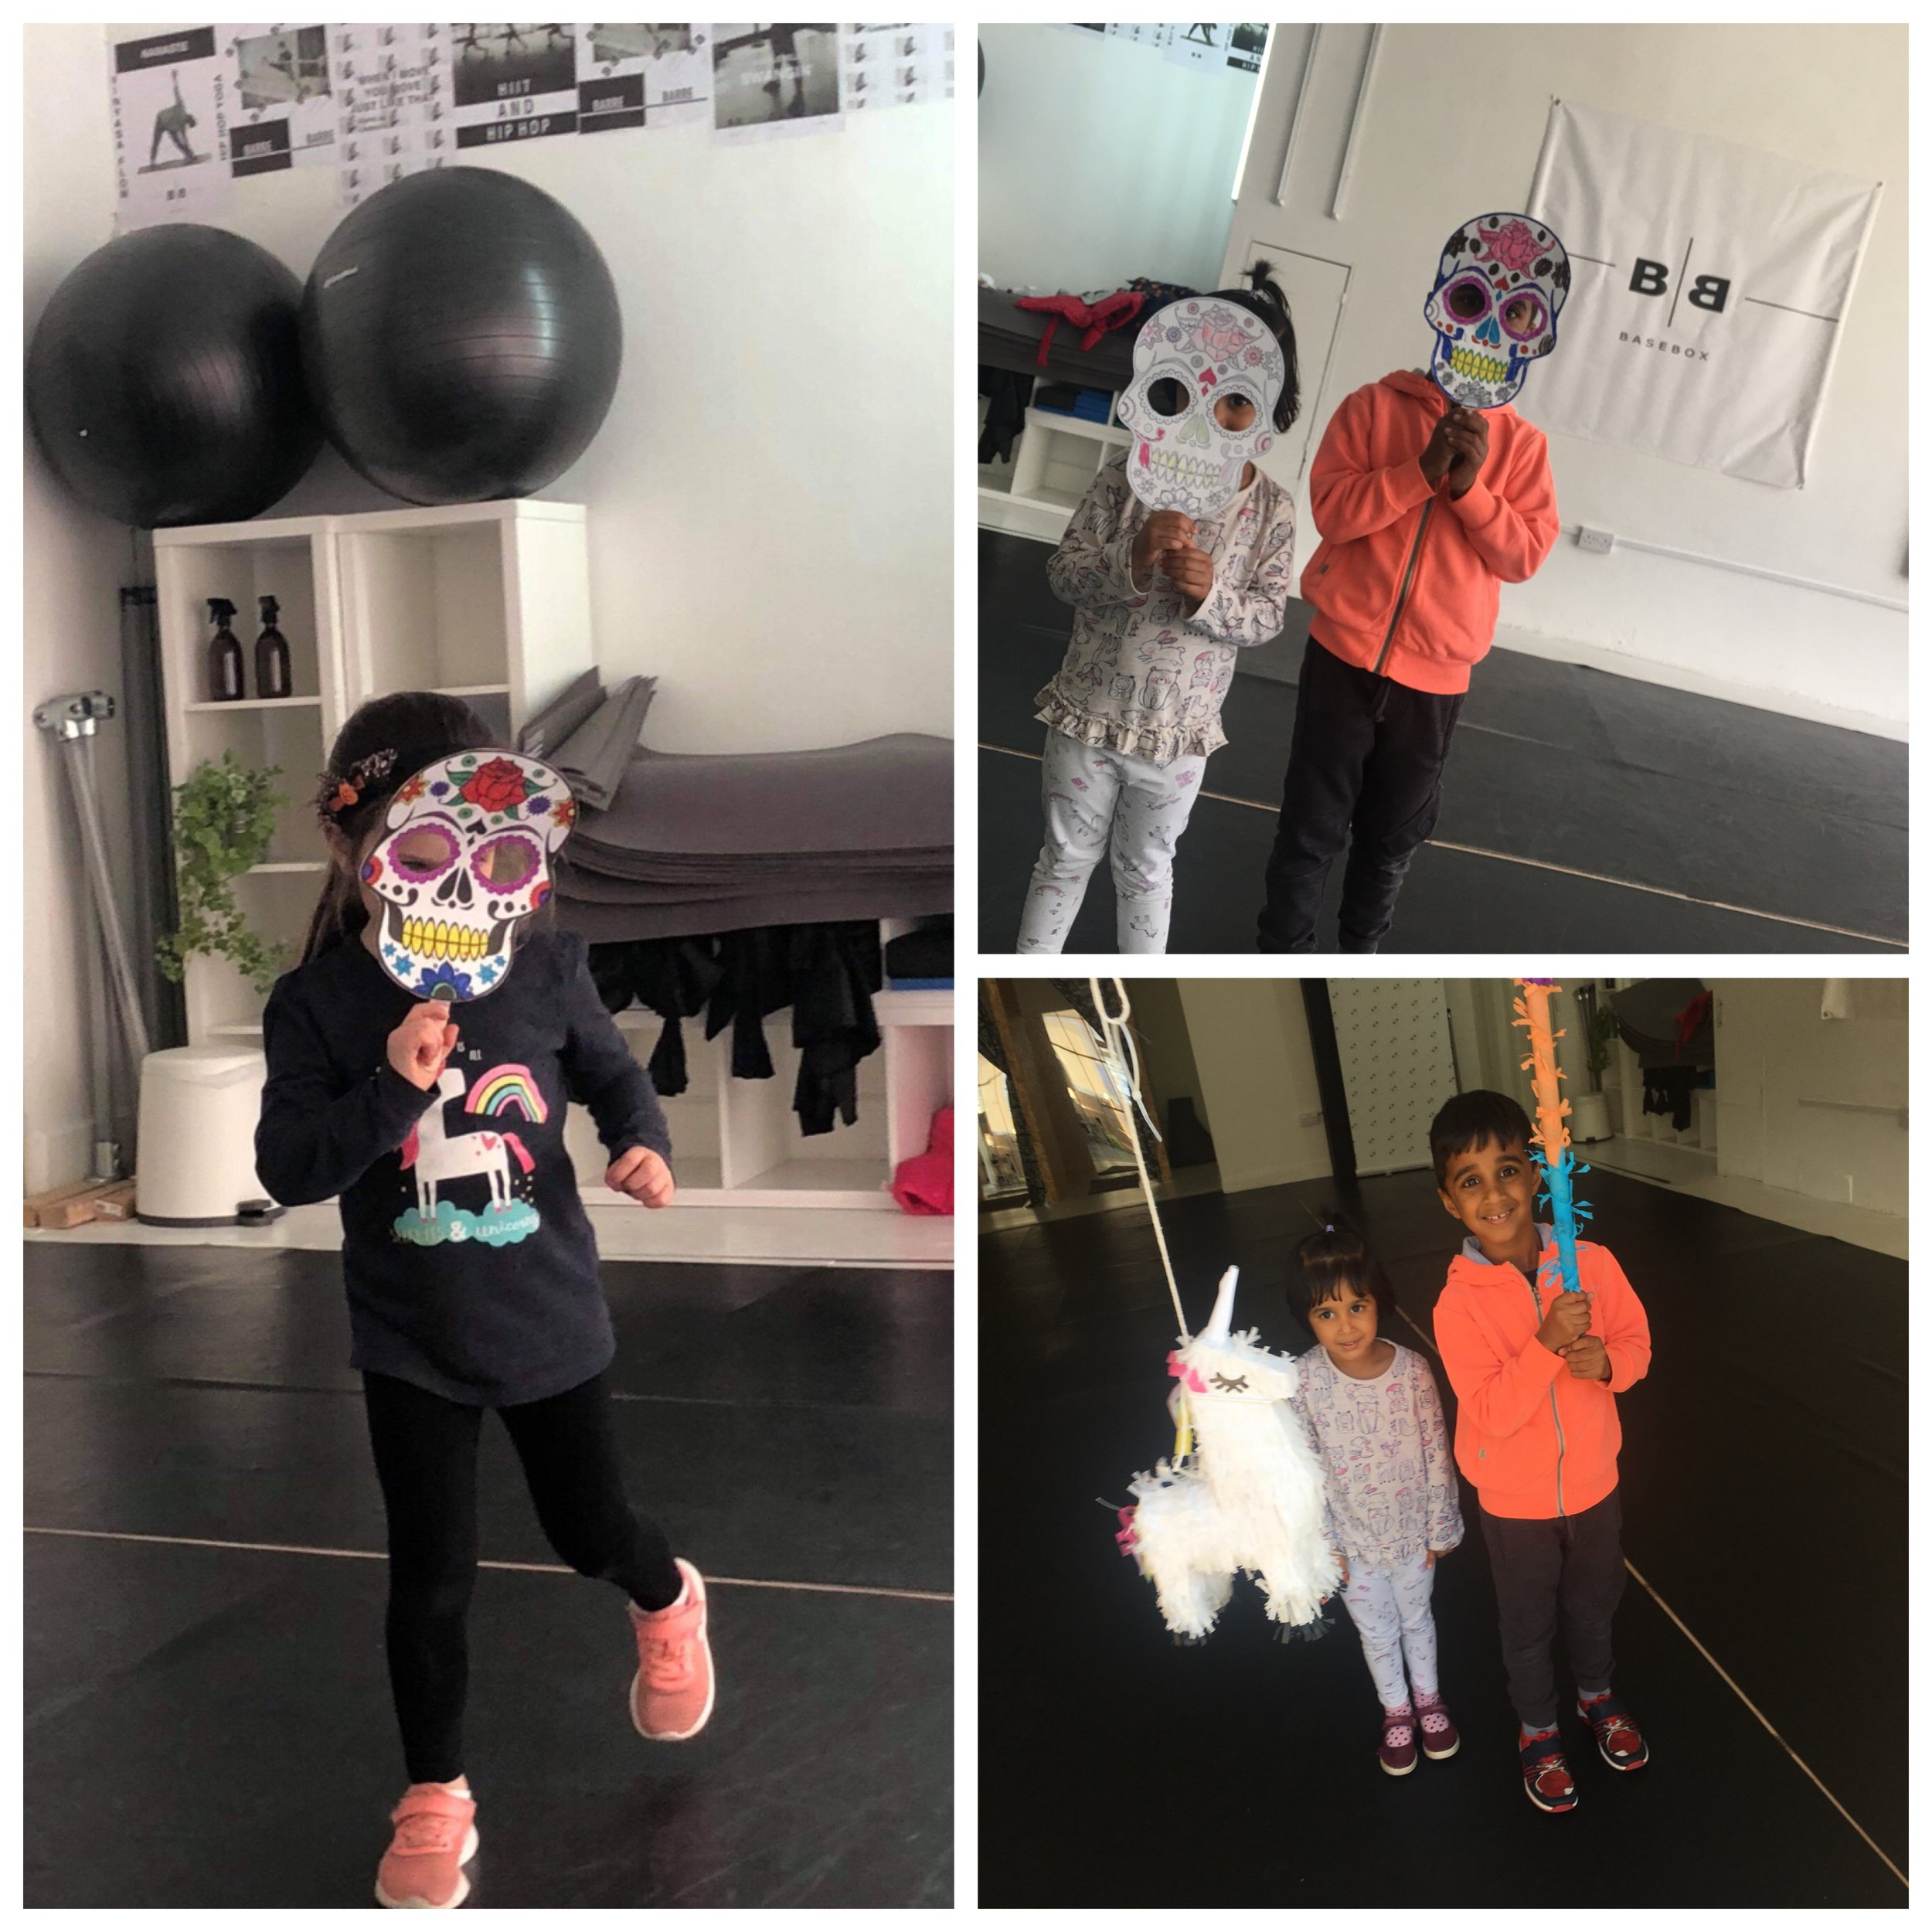 October Half Term 2018: Coco Workshop - In the run up to halloween we put on a Mexican 'Day of the Dead' special workshop, with dances to the soundtrack of the Disney film Coco, mask making, and we even had a pinata!